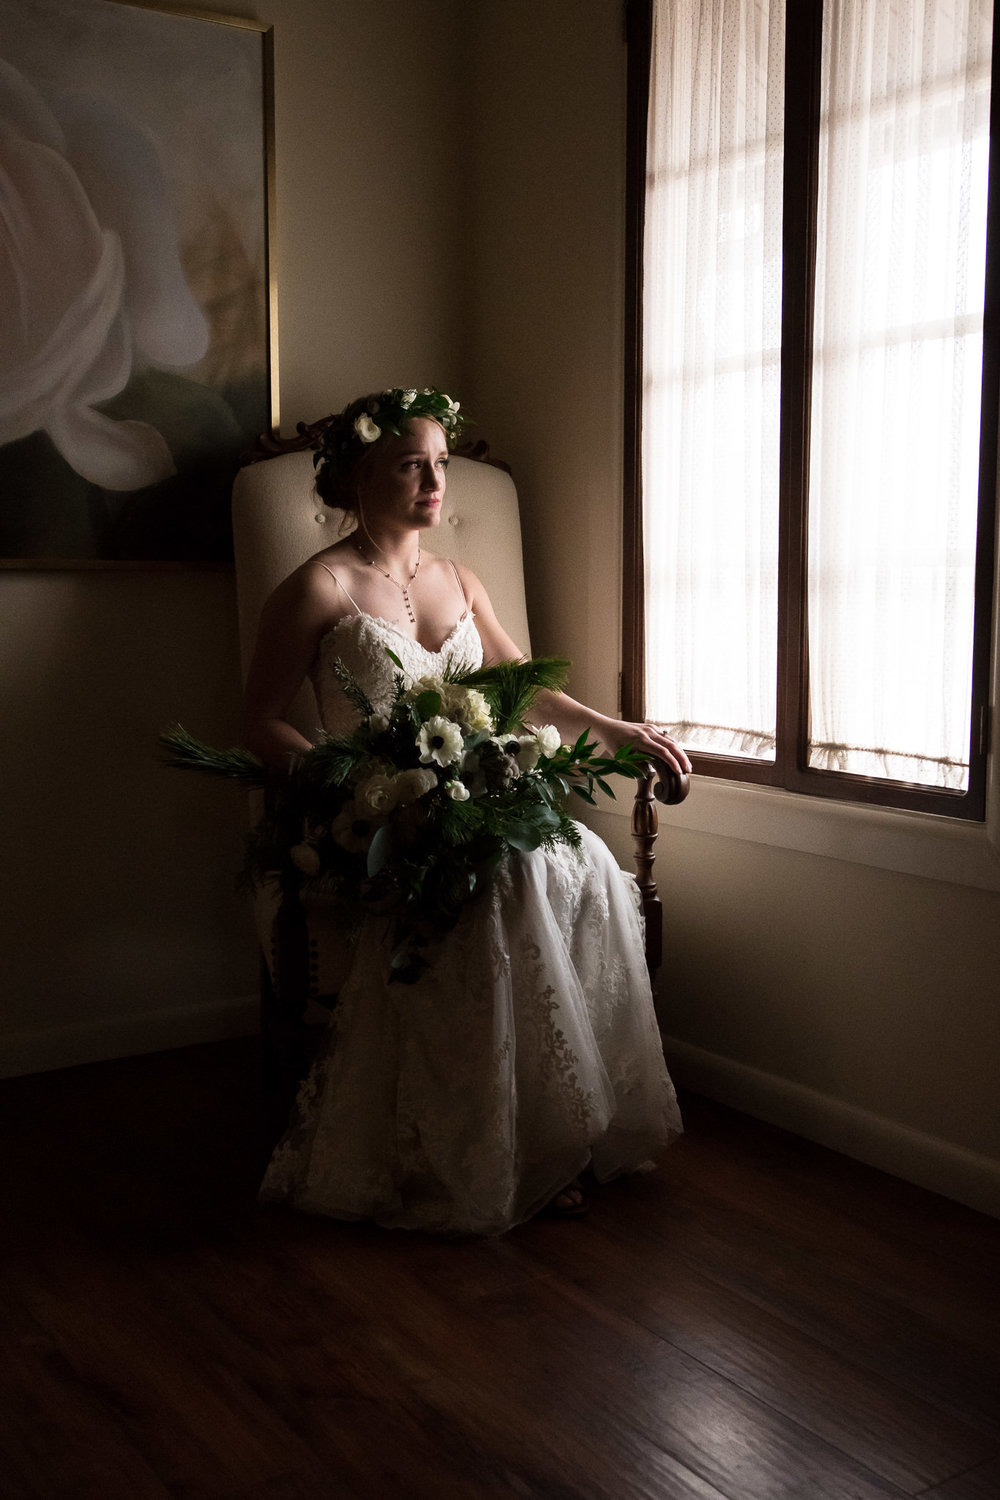 Trevor-Hooper-Wedding-Photographer-The-Bungalow-Wedding-Utah_CLR_030.jpg